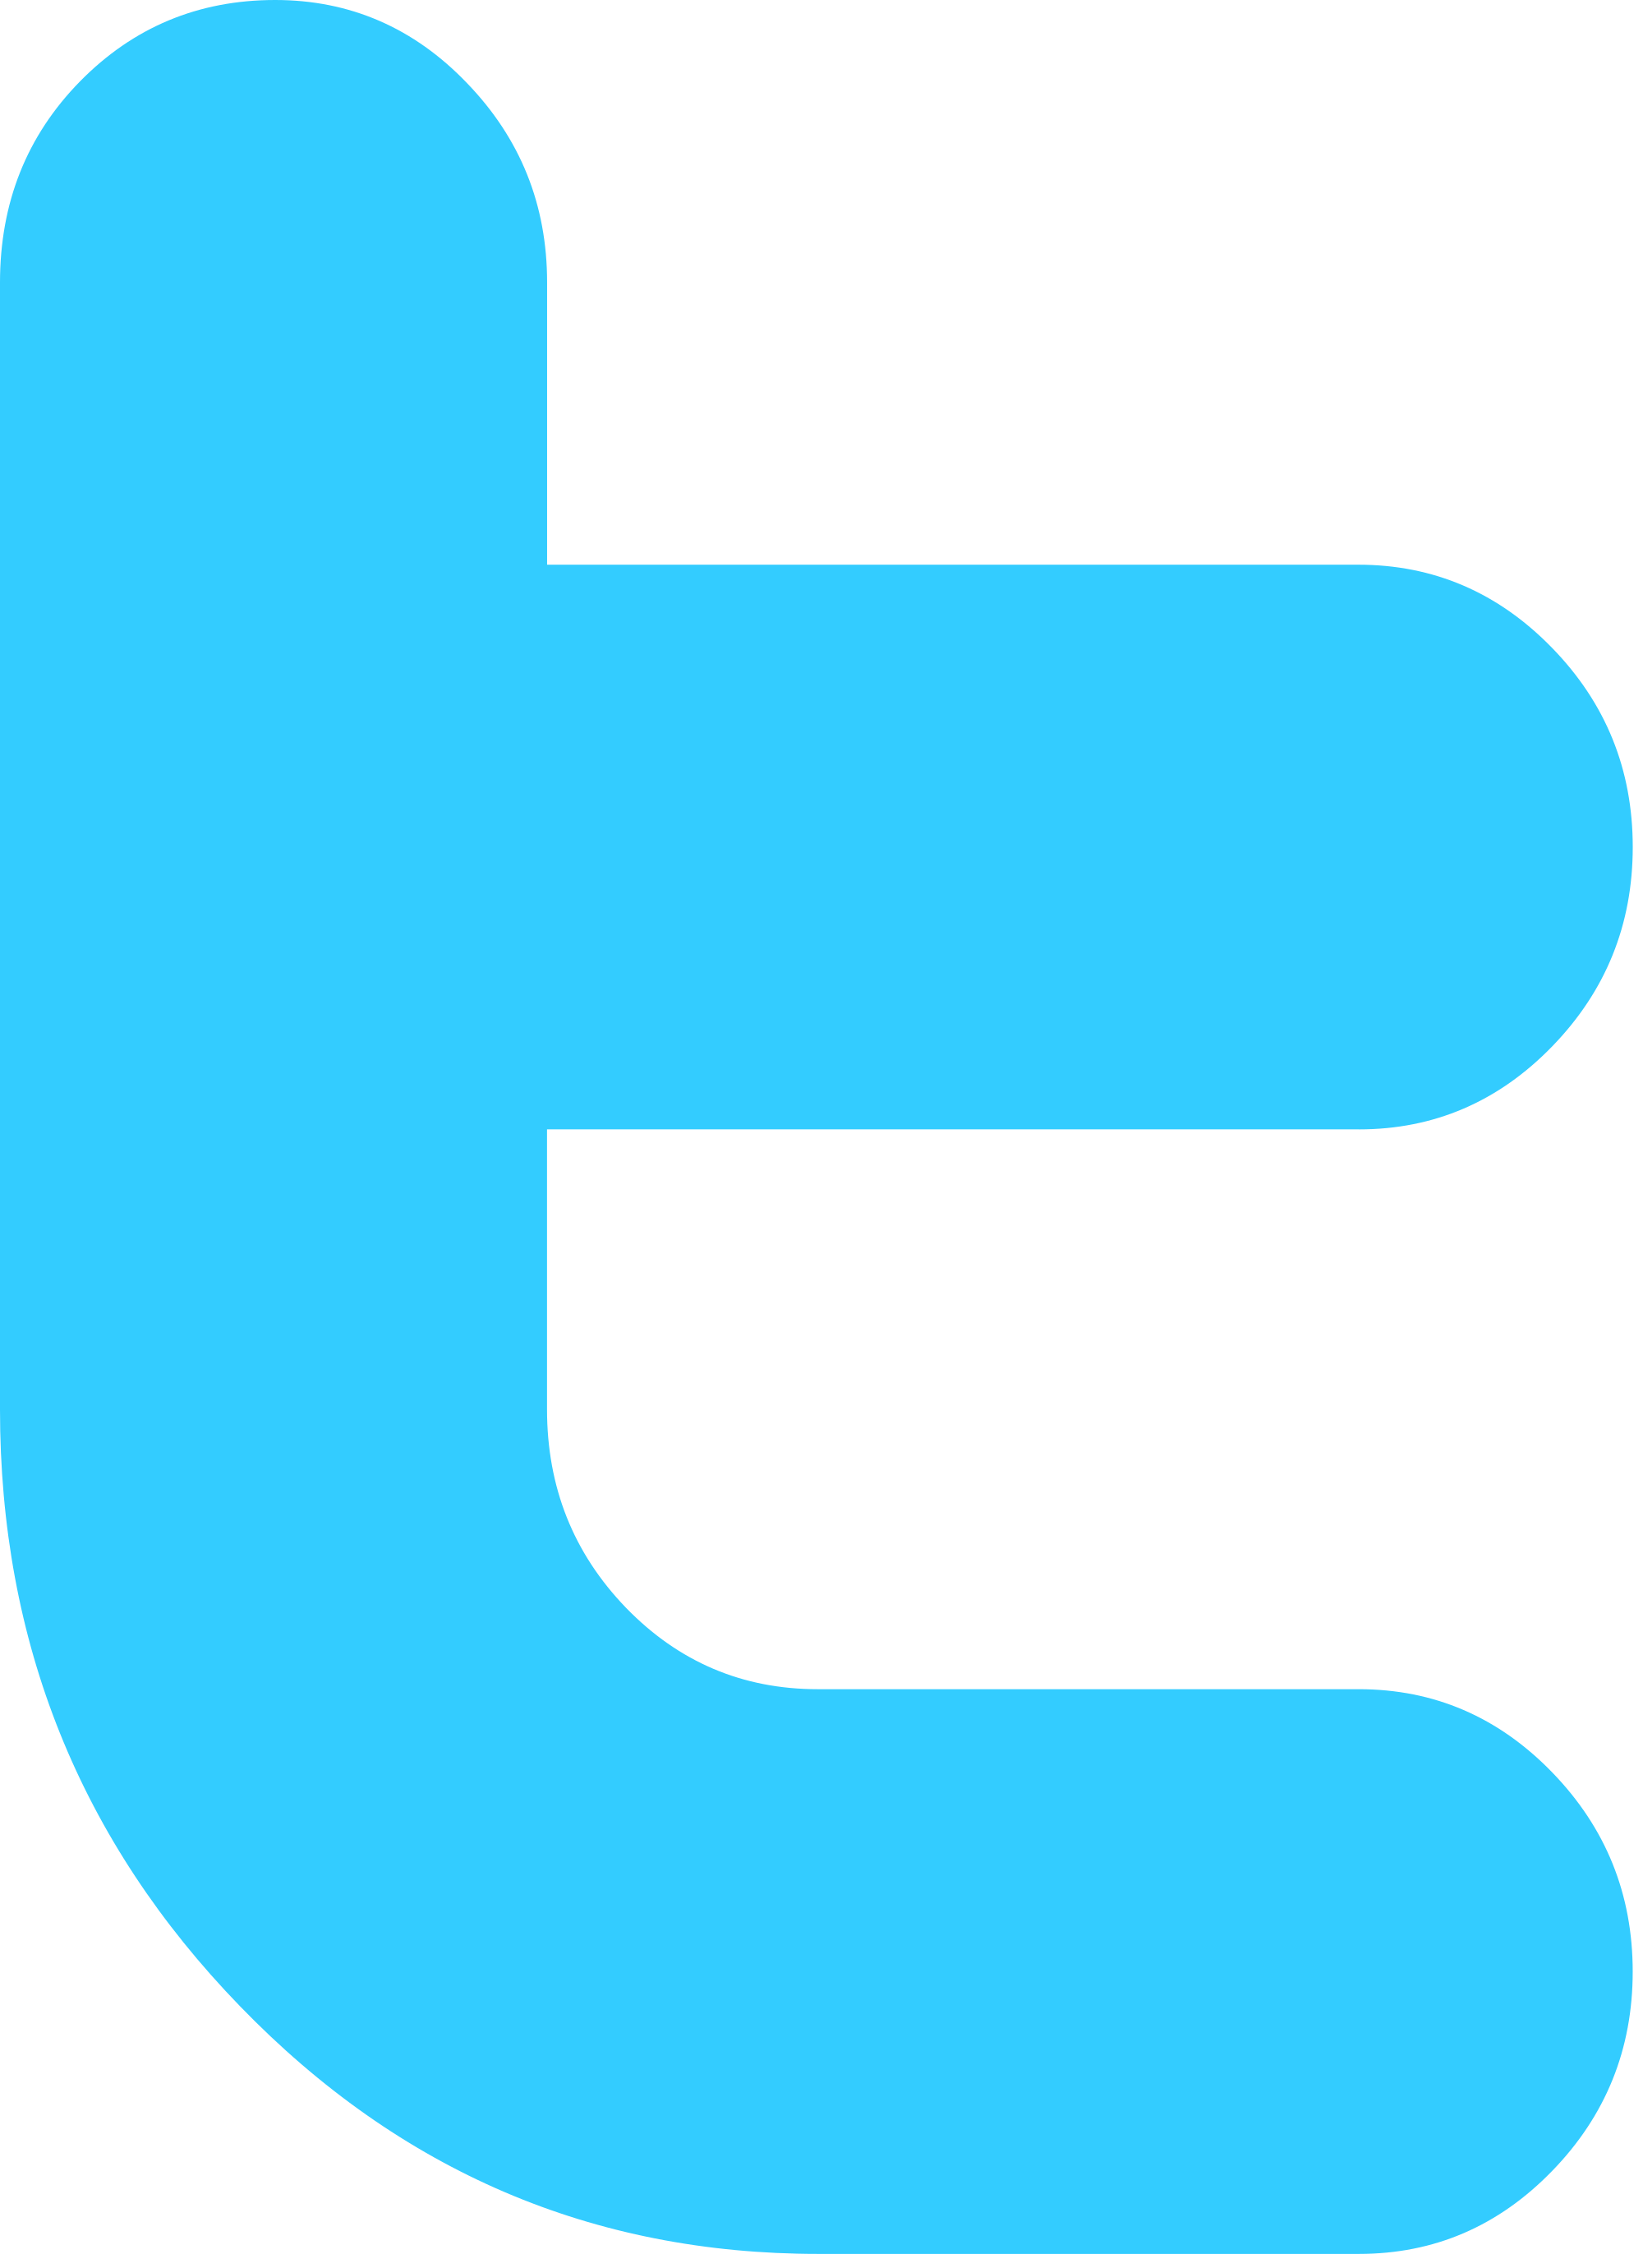 Twitter logo 2016 png. File initial svg wikimedia